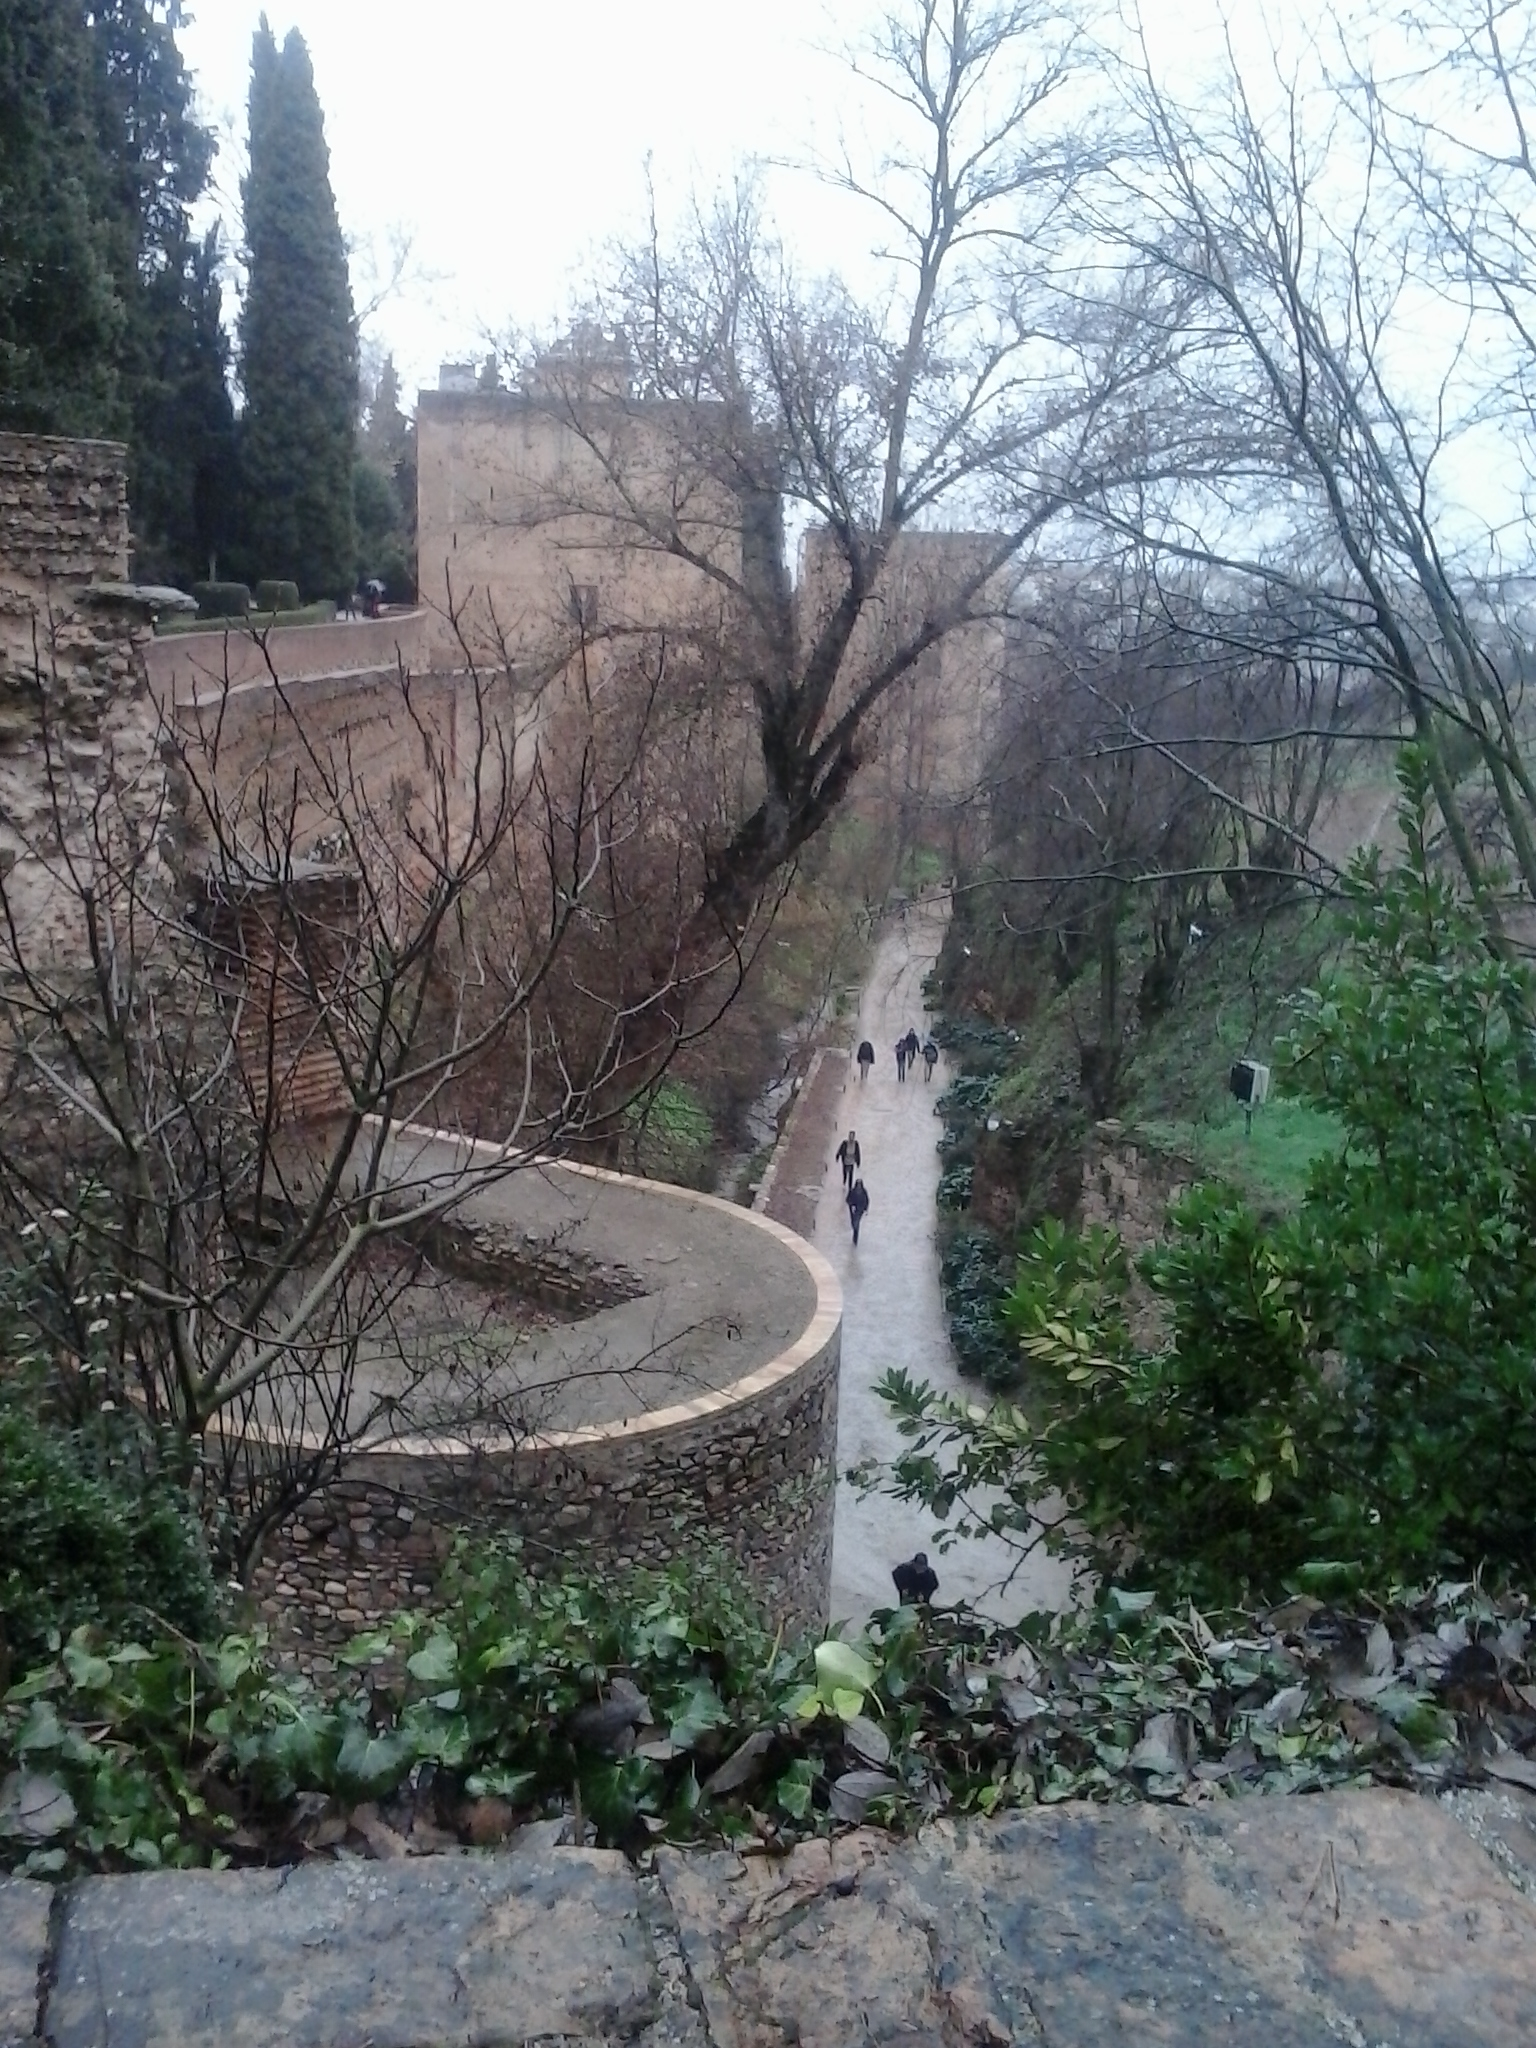 Institutional commitment to restore the mediaeval path known as Cuesta de los Chinos